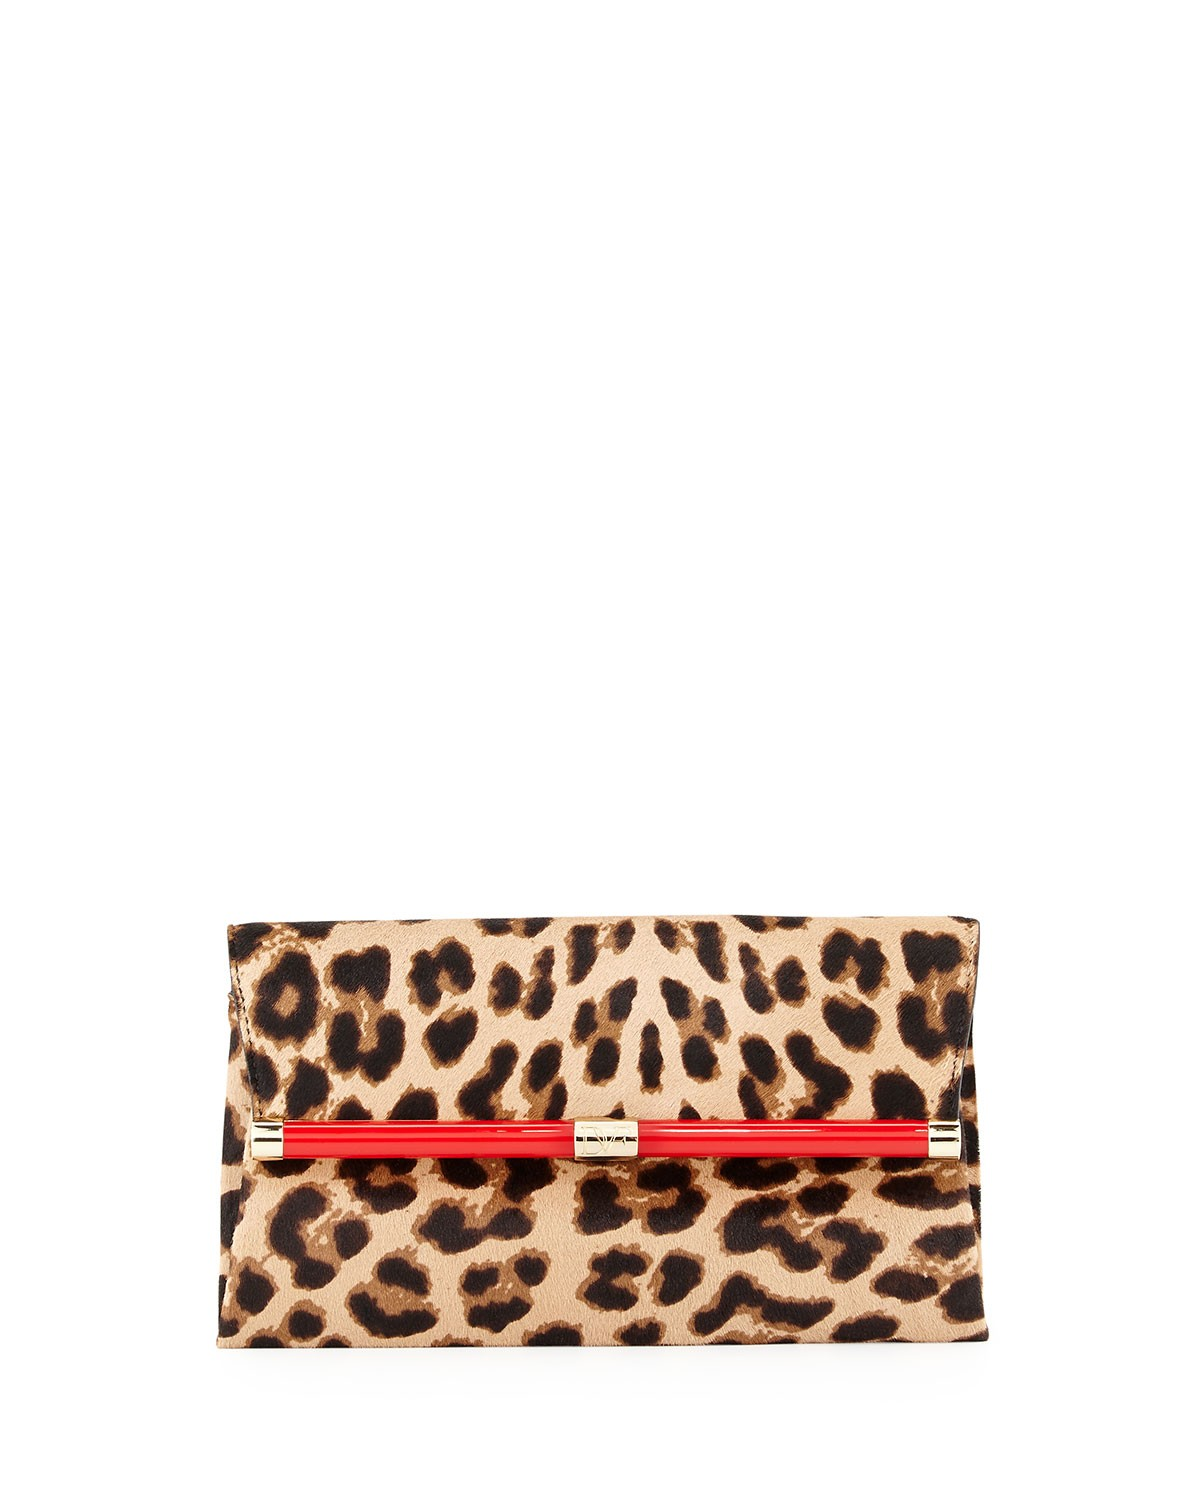 440 Calf Hair Envelope Clutch Bag, Leopard - Diane von Furstenberg